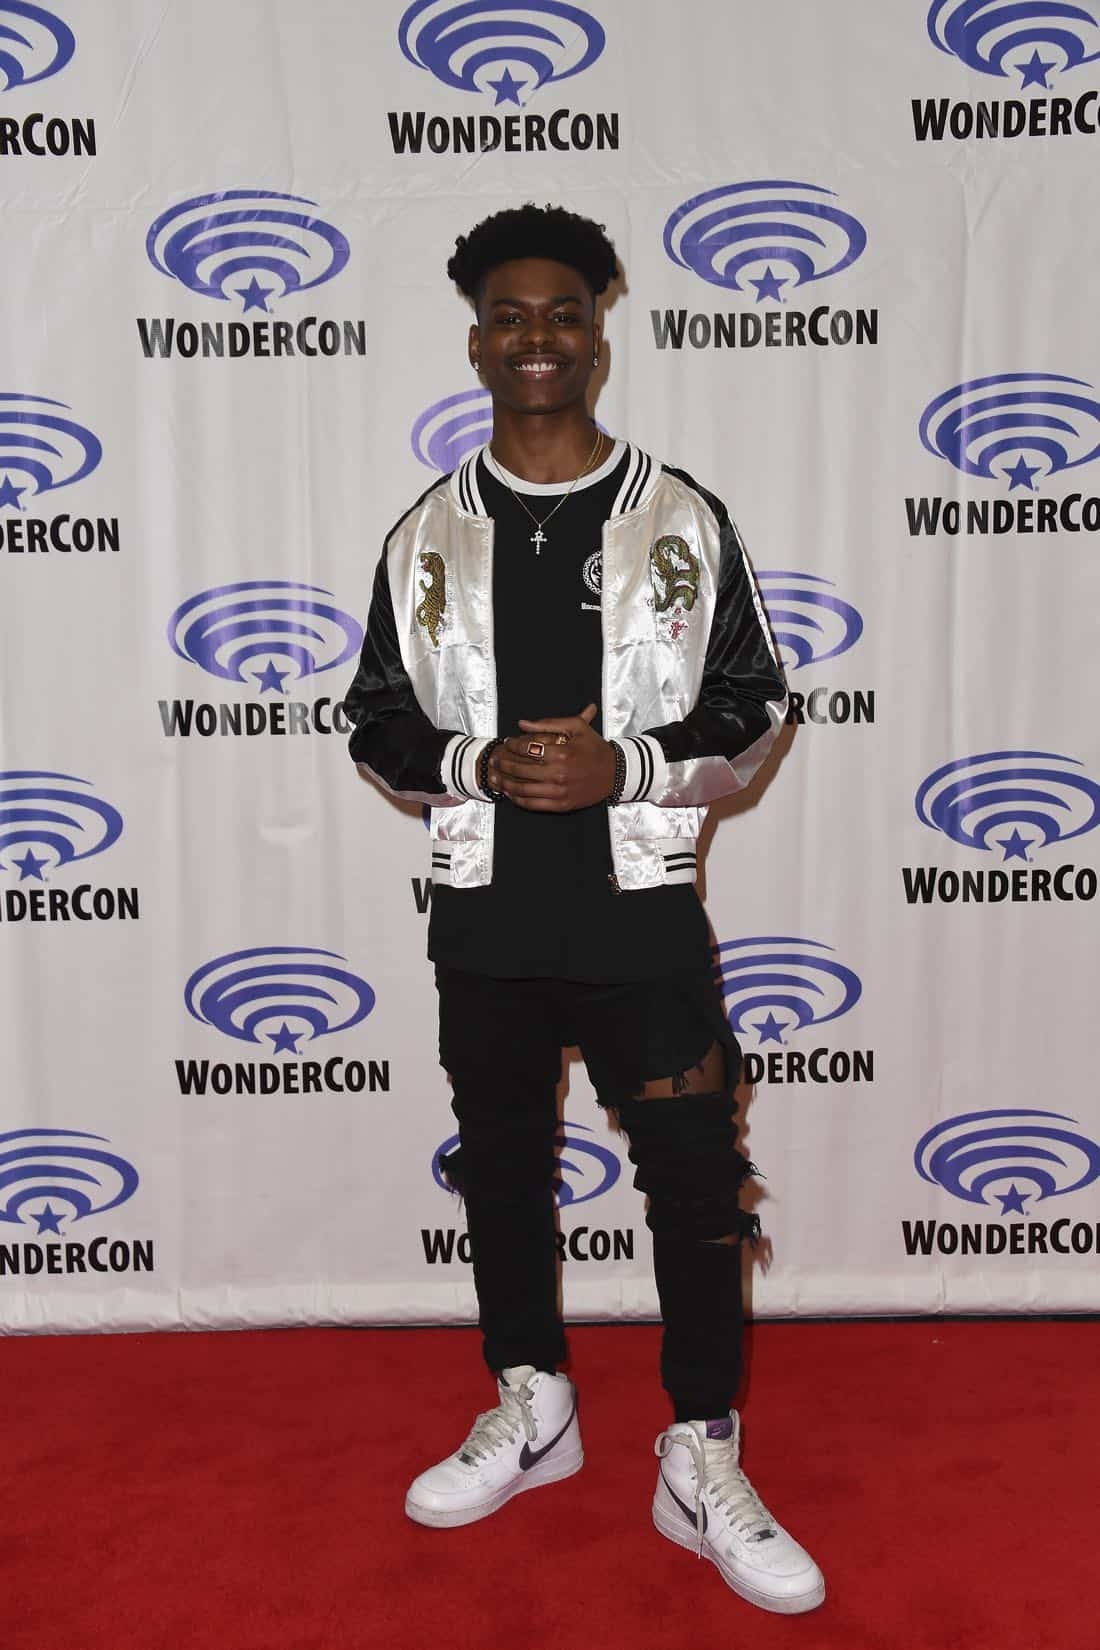 "MARVEL'S CLOAK & DAGGER - The executive producers and cast of Freeform's highly-anticipated new original series ""Marvel's Cloak & Dagger"" attended WonderCon to promote the June 7th premiere. (Freeform/Aaron Poole)"